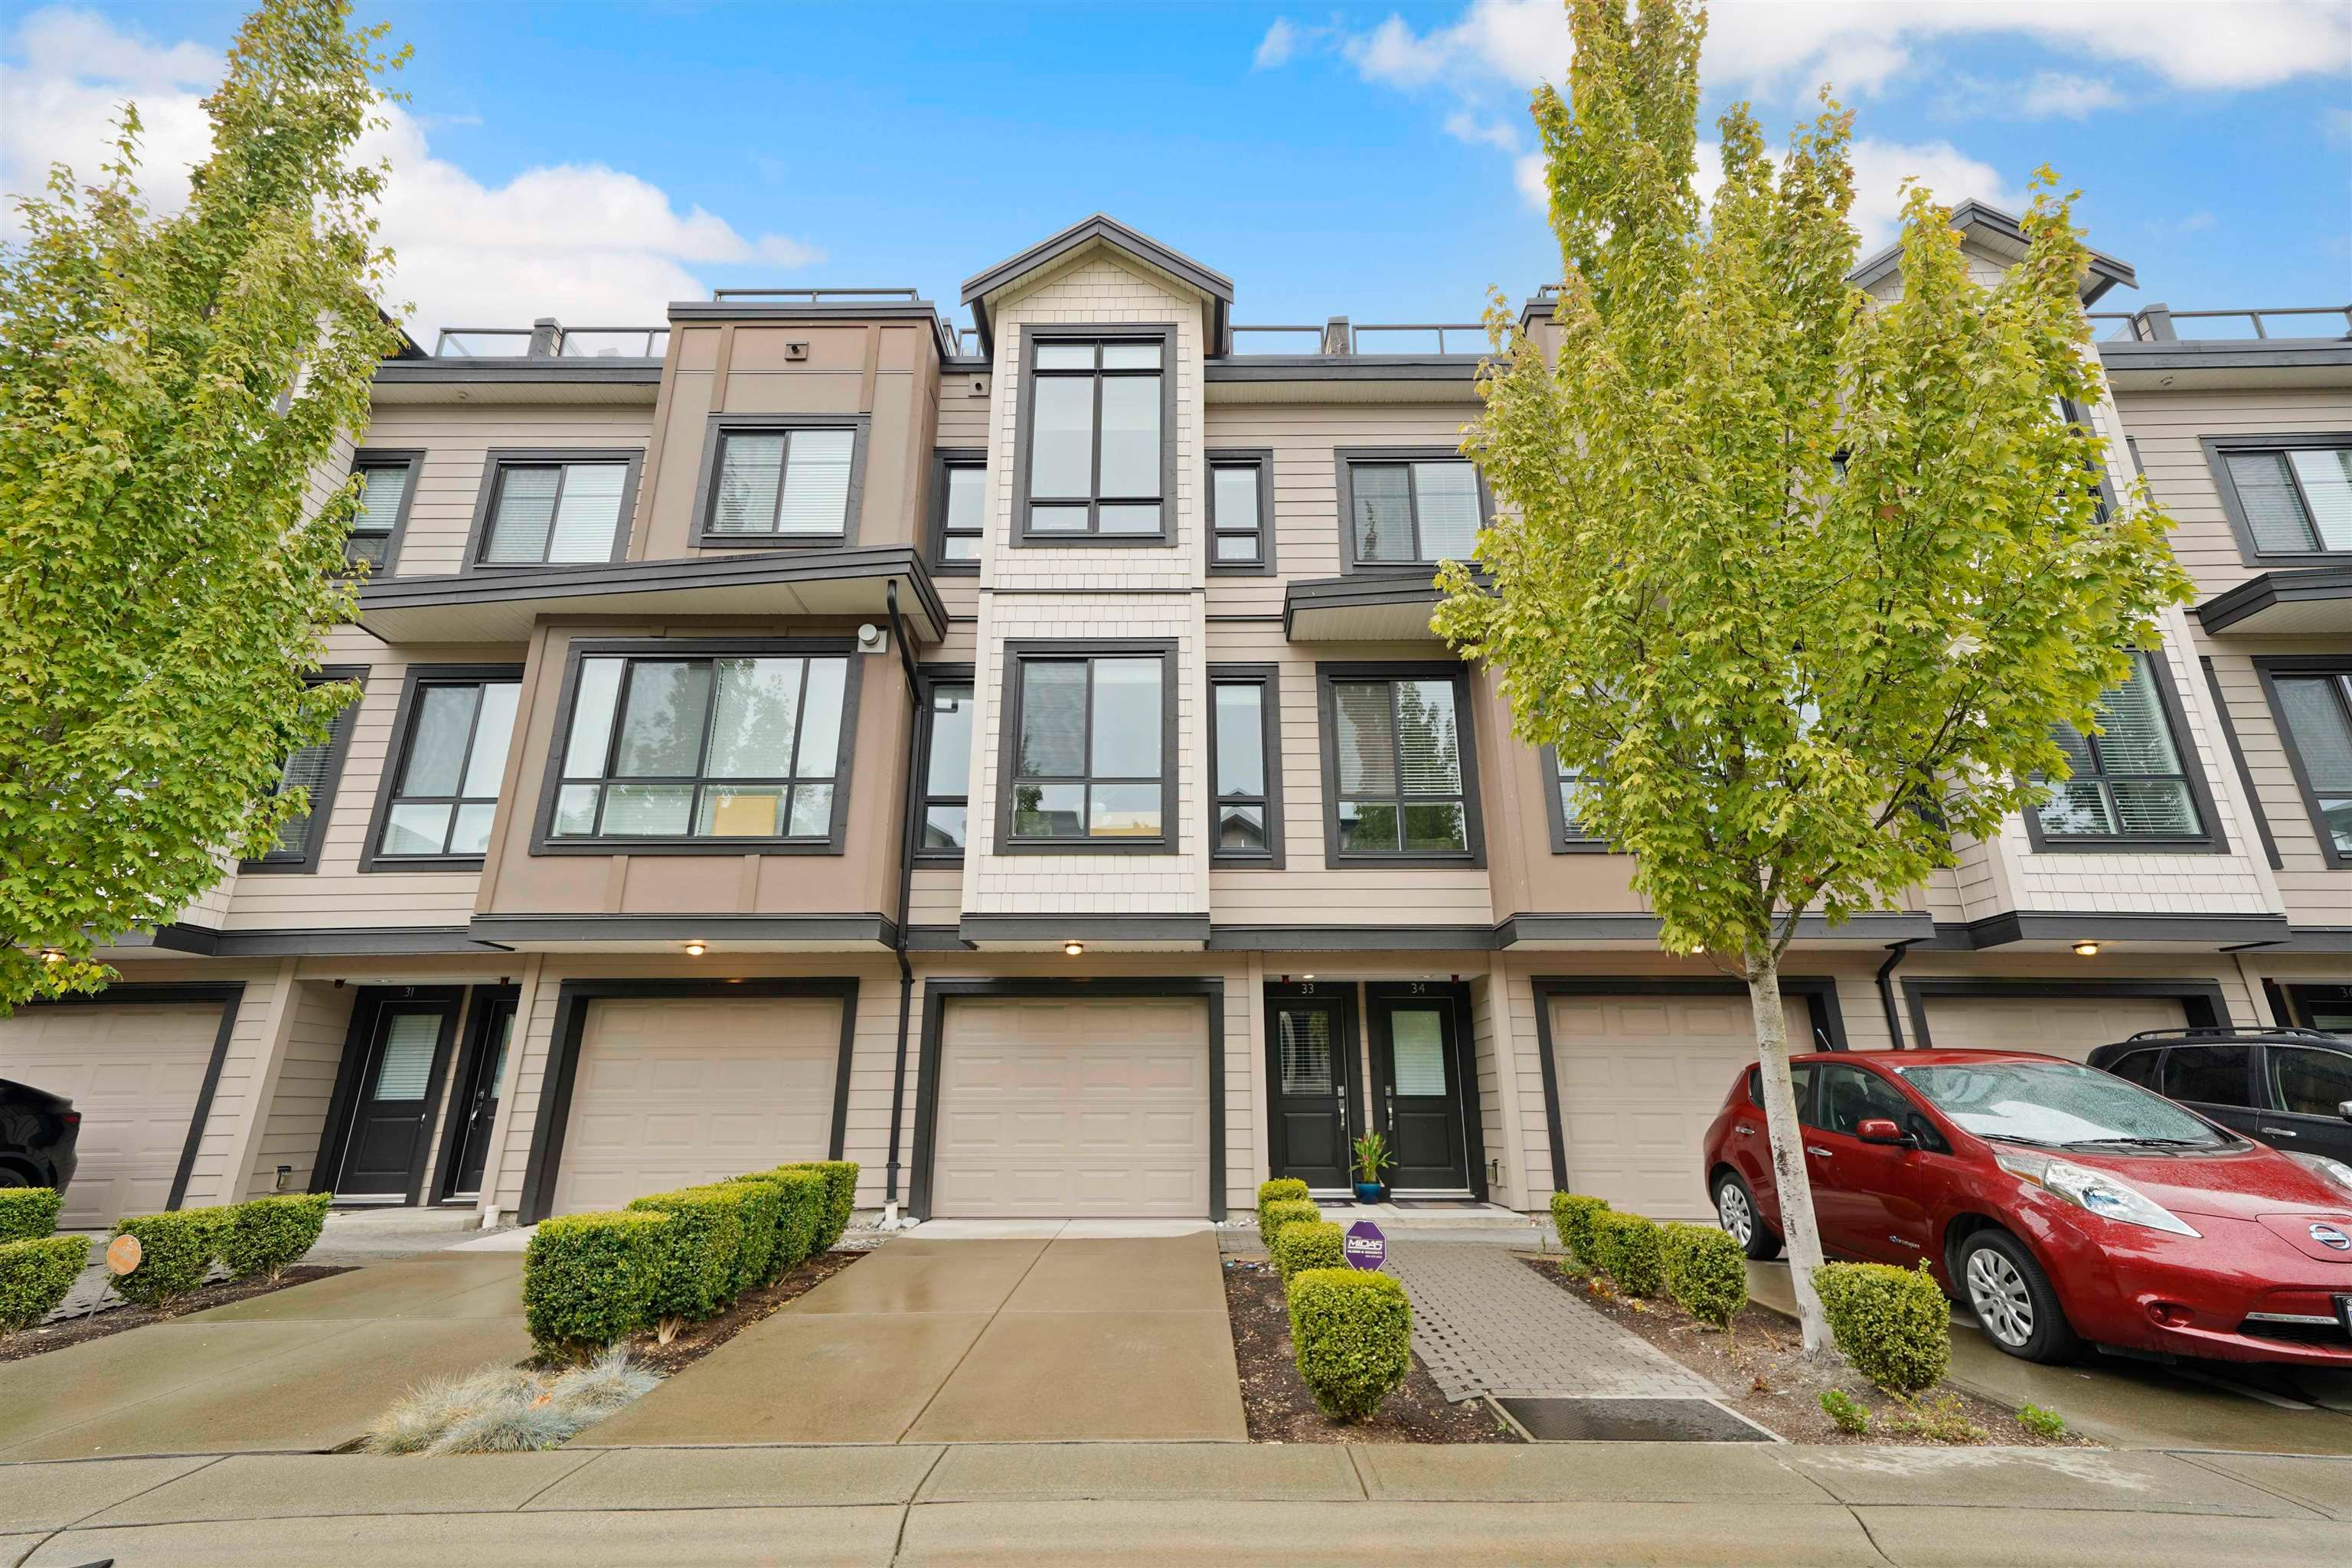 Main Photo: 33 100 WOOD Street in New Westminster: Queensborough Townhouse for sale : MLS®# R2618570